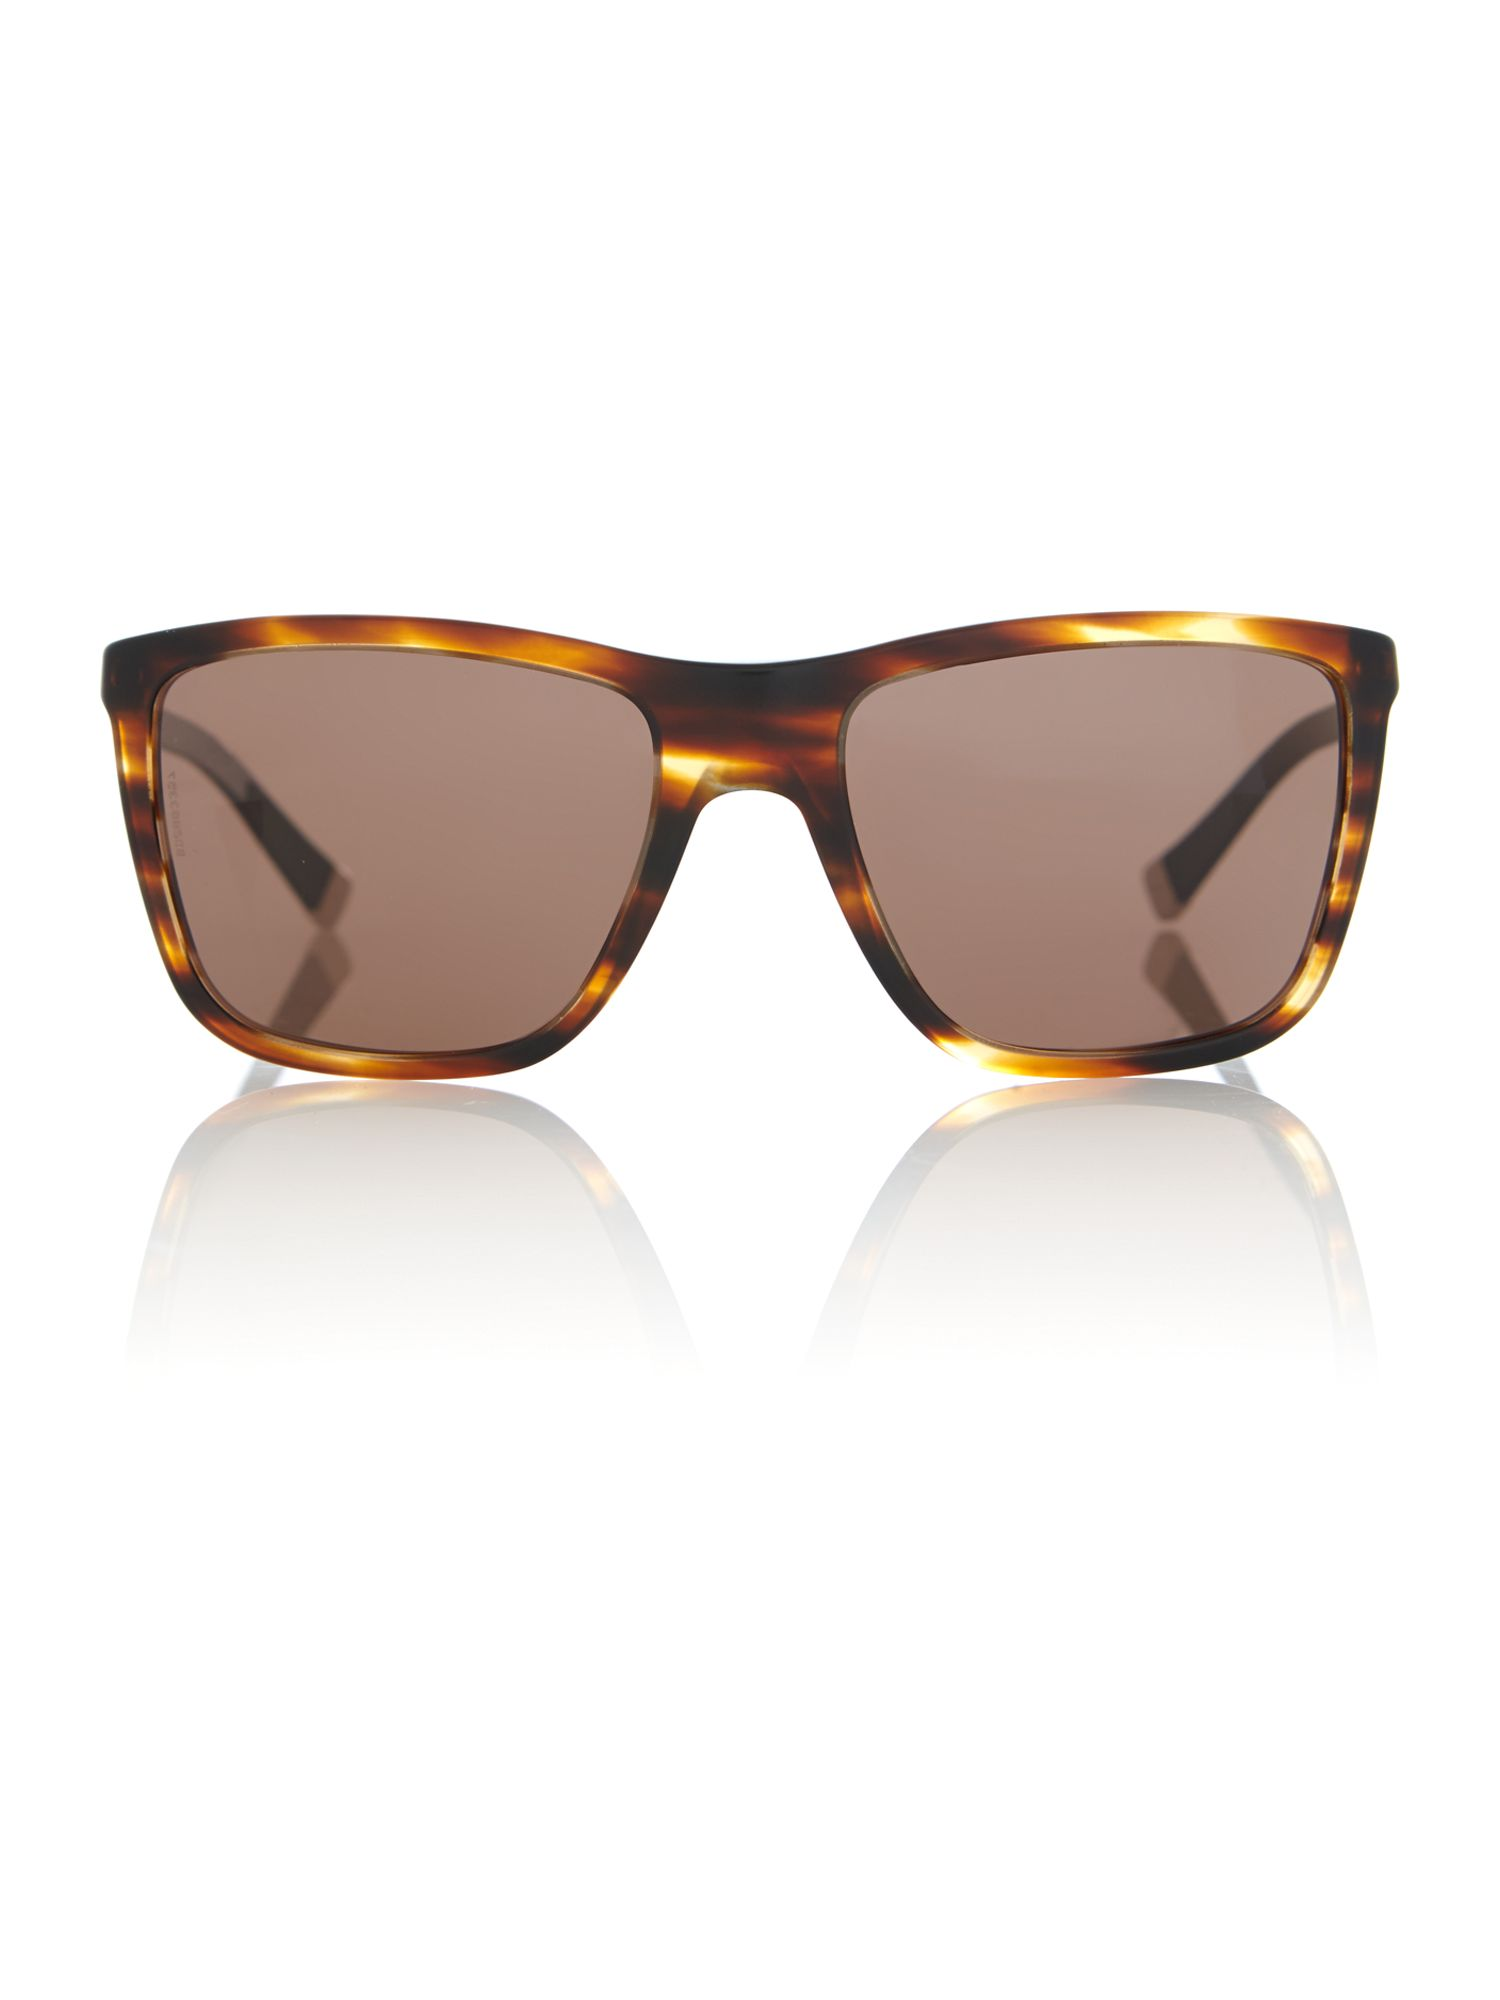 Men`s 0dg4210 sunglasses